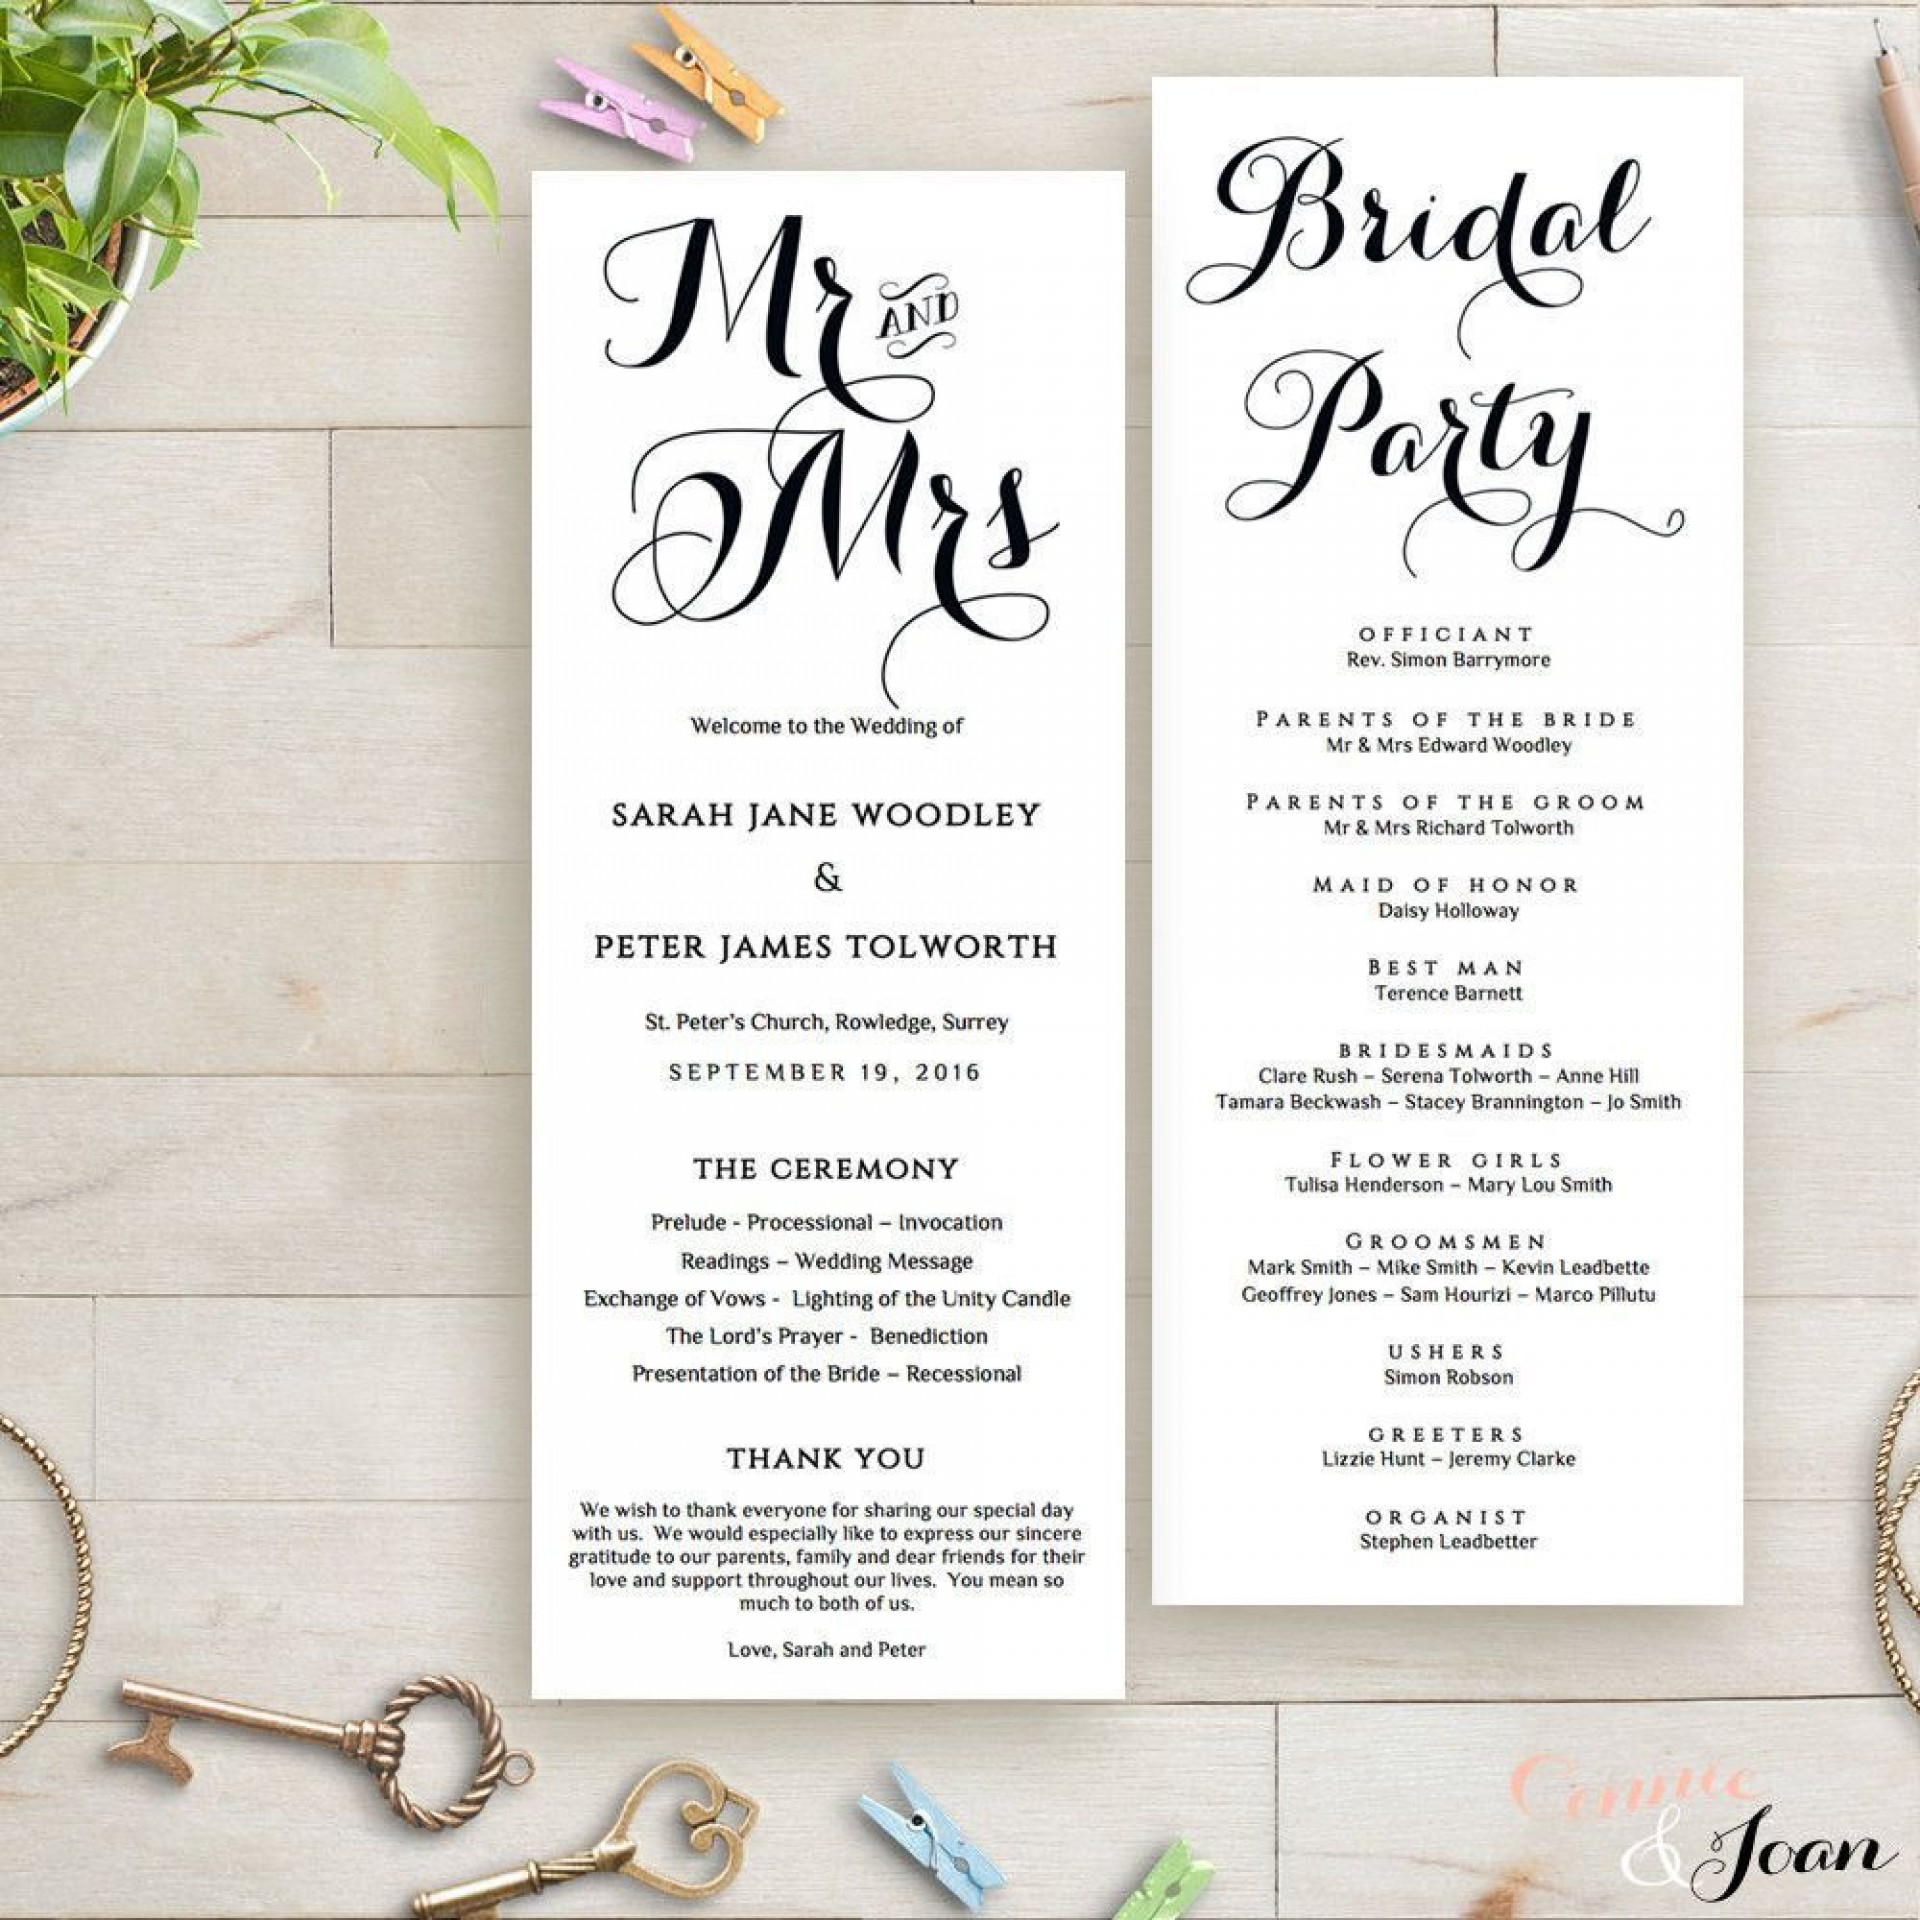 010 Magnificent Free Wedding Order Of Service Template Word Idea  Microsoft1920